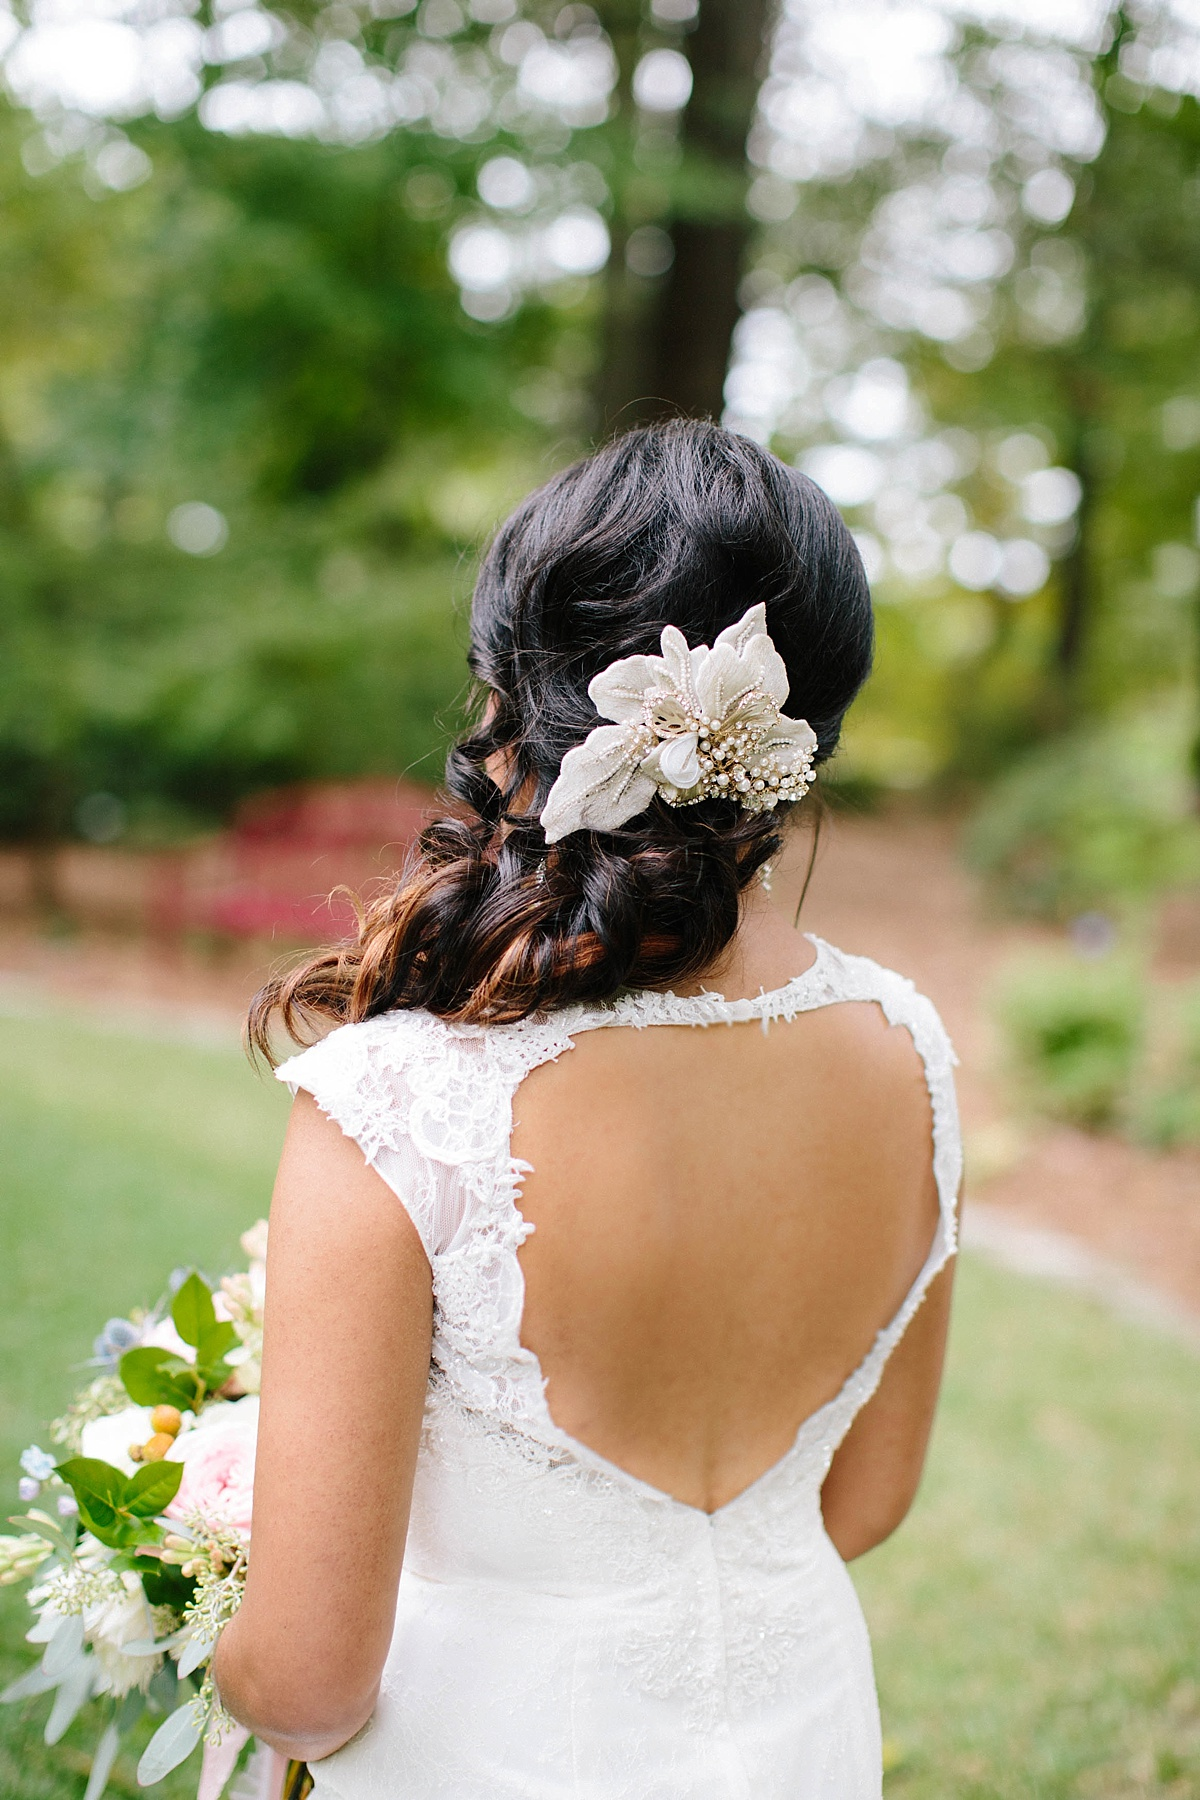 Davids-Bridal-for-Aisle-Society-Chelsea-Anderson-Photography-00182.jpg